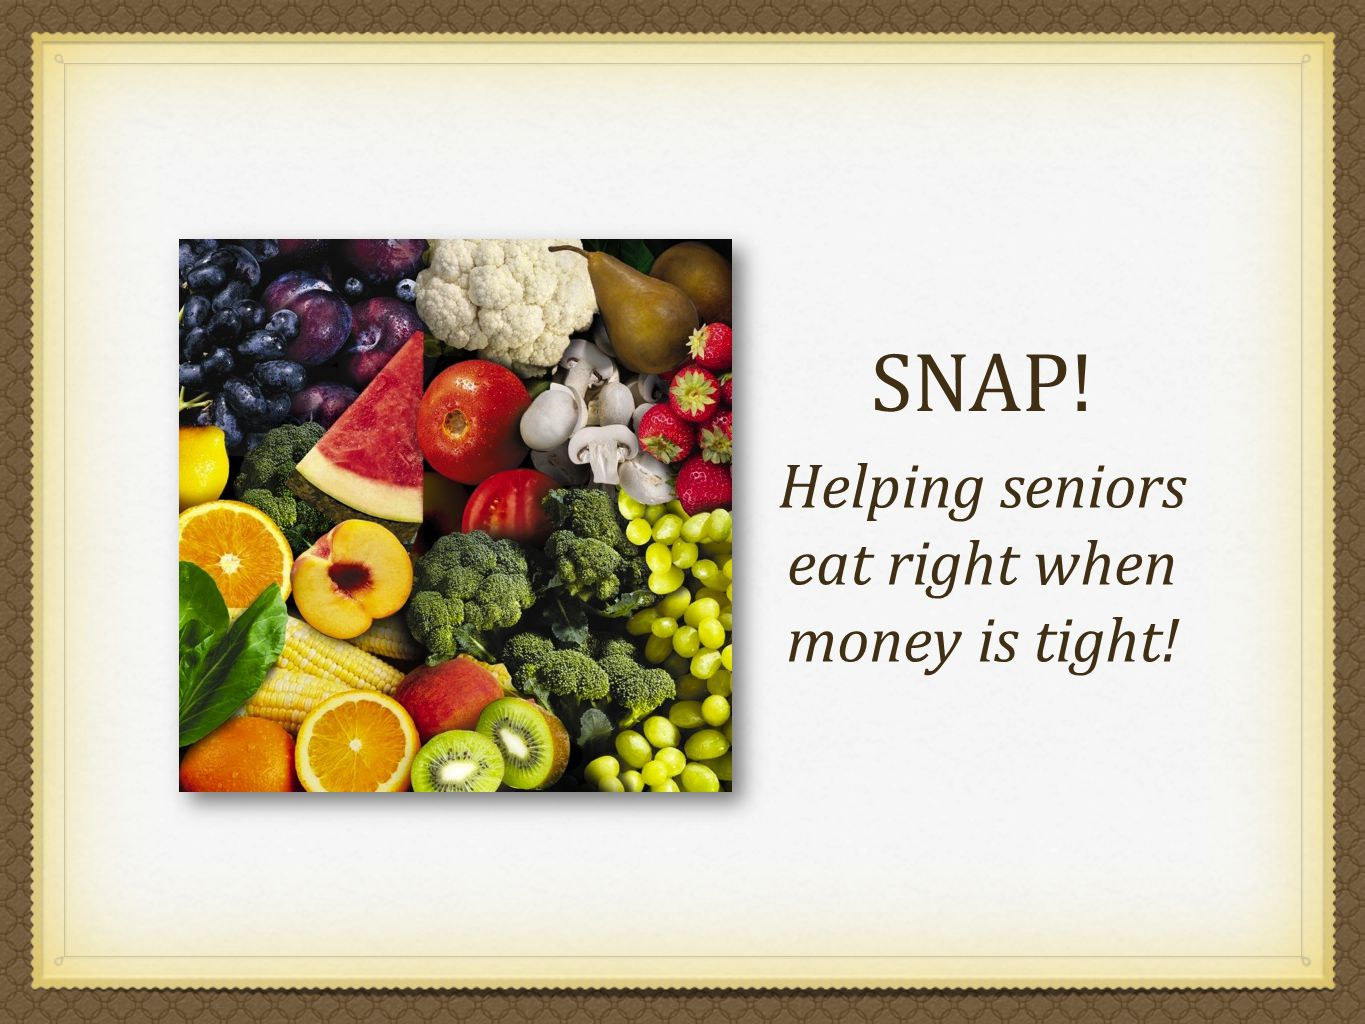 Helping seniors eat right when money is tight! SNAP!